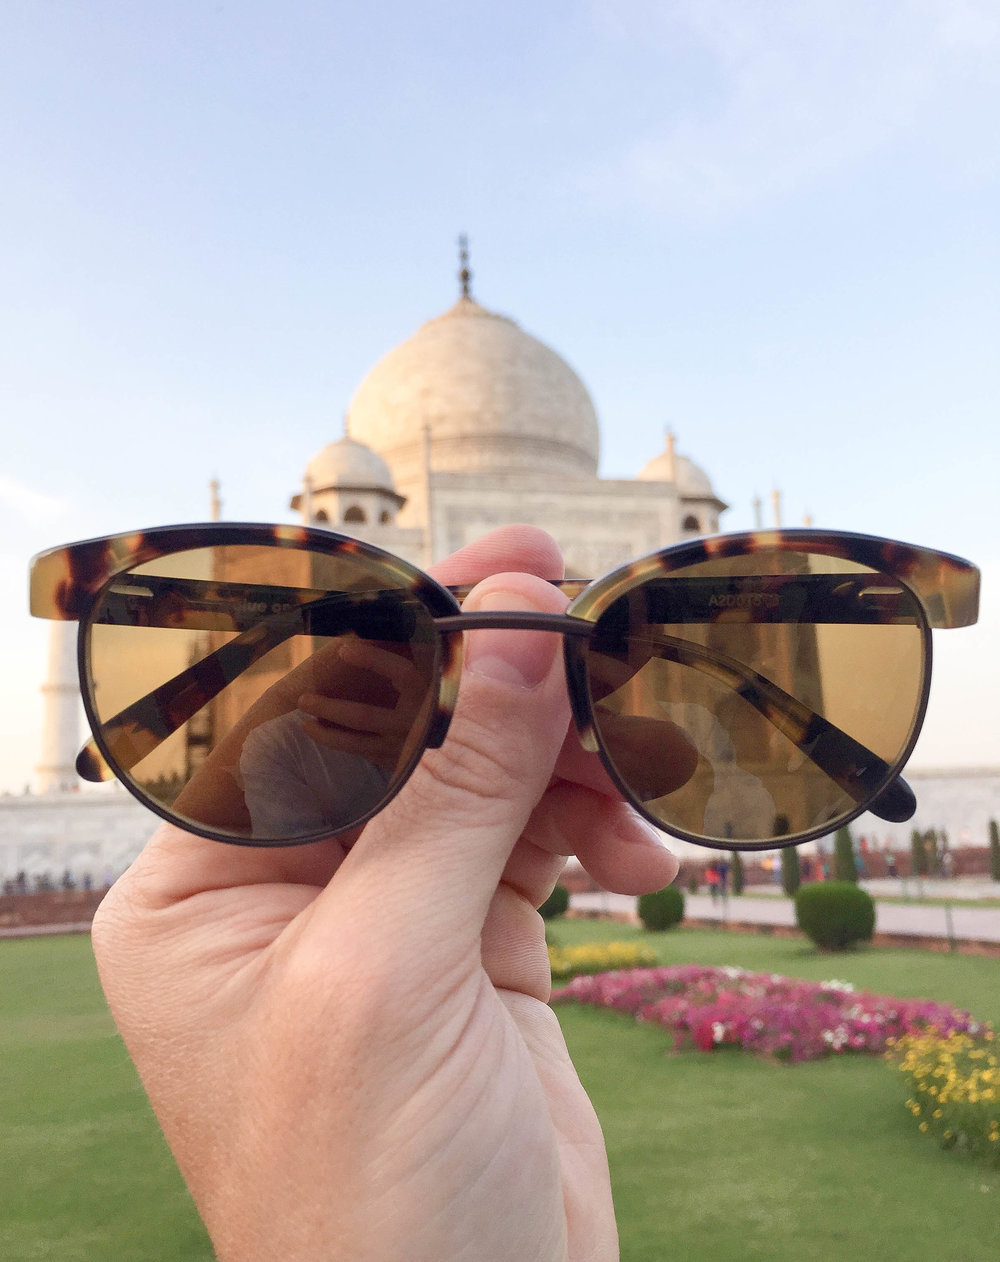 The Alue One in Tawny Tort at the Taj Mahal shot by Chris K.